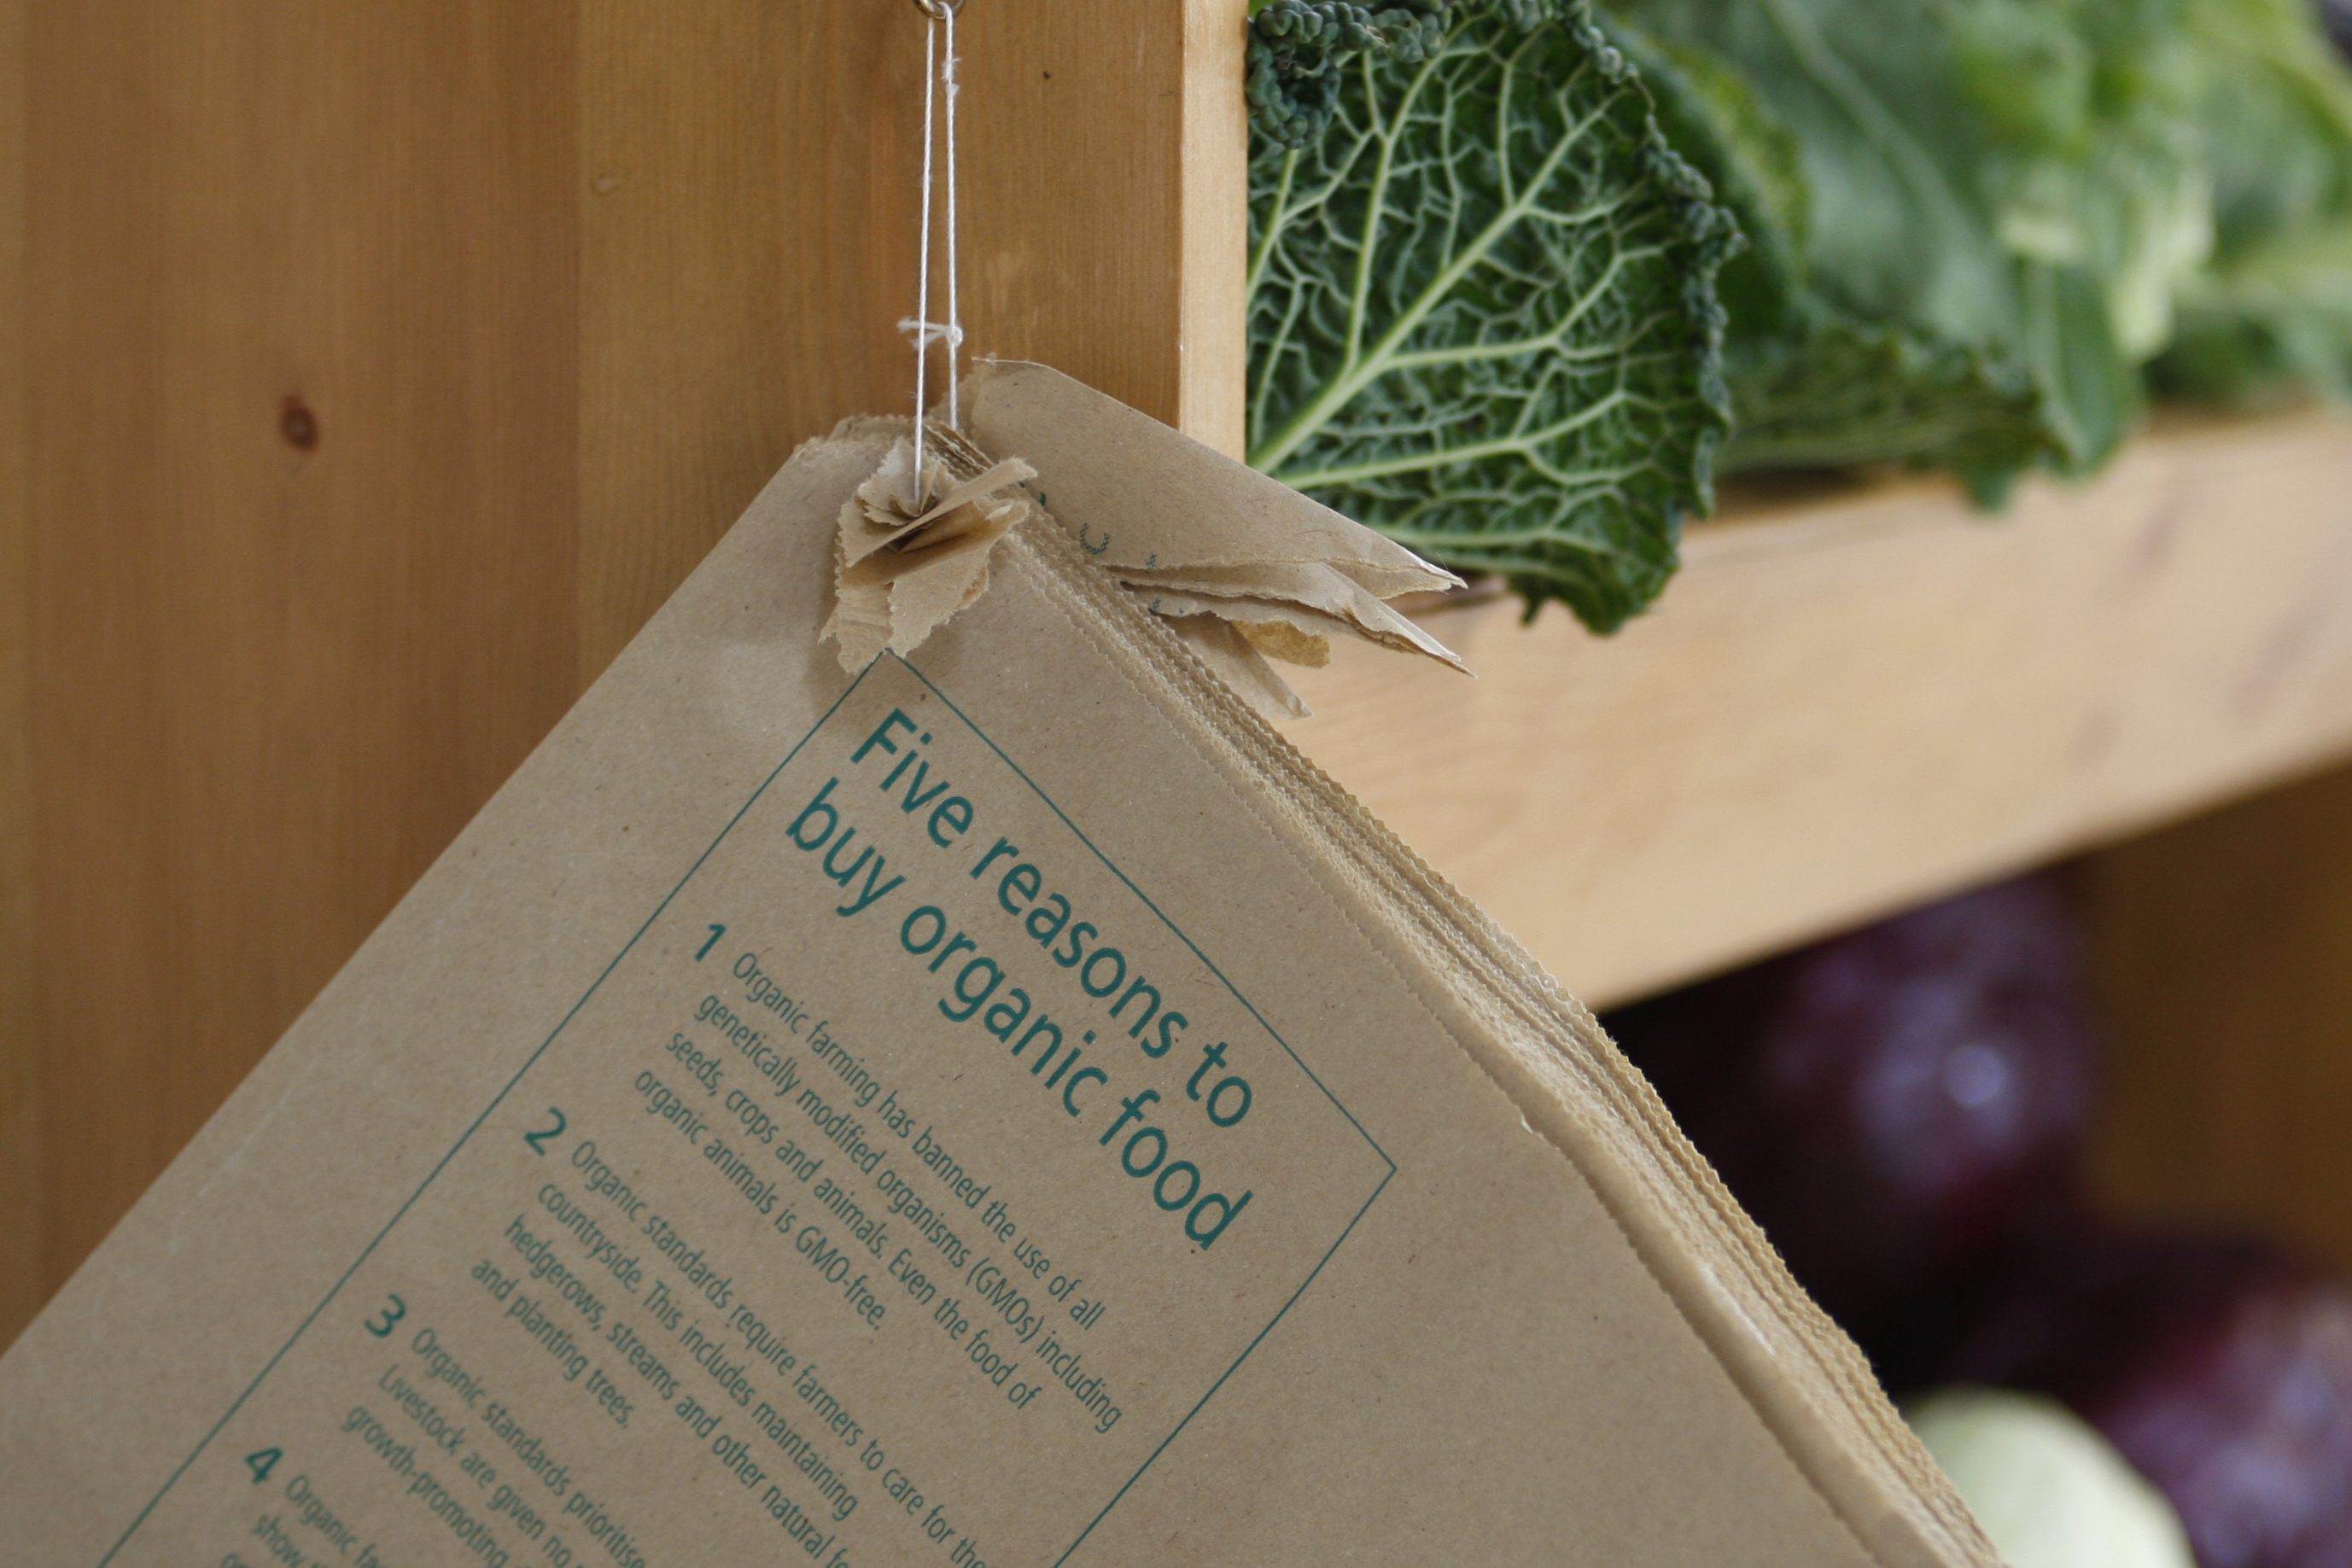 Paper bags with organic message hanging up next to vegetables on shelf